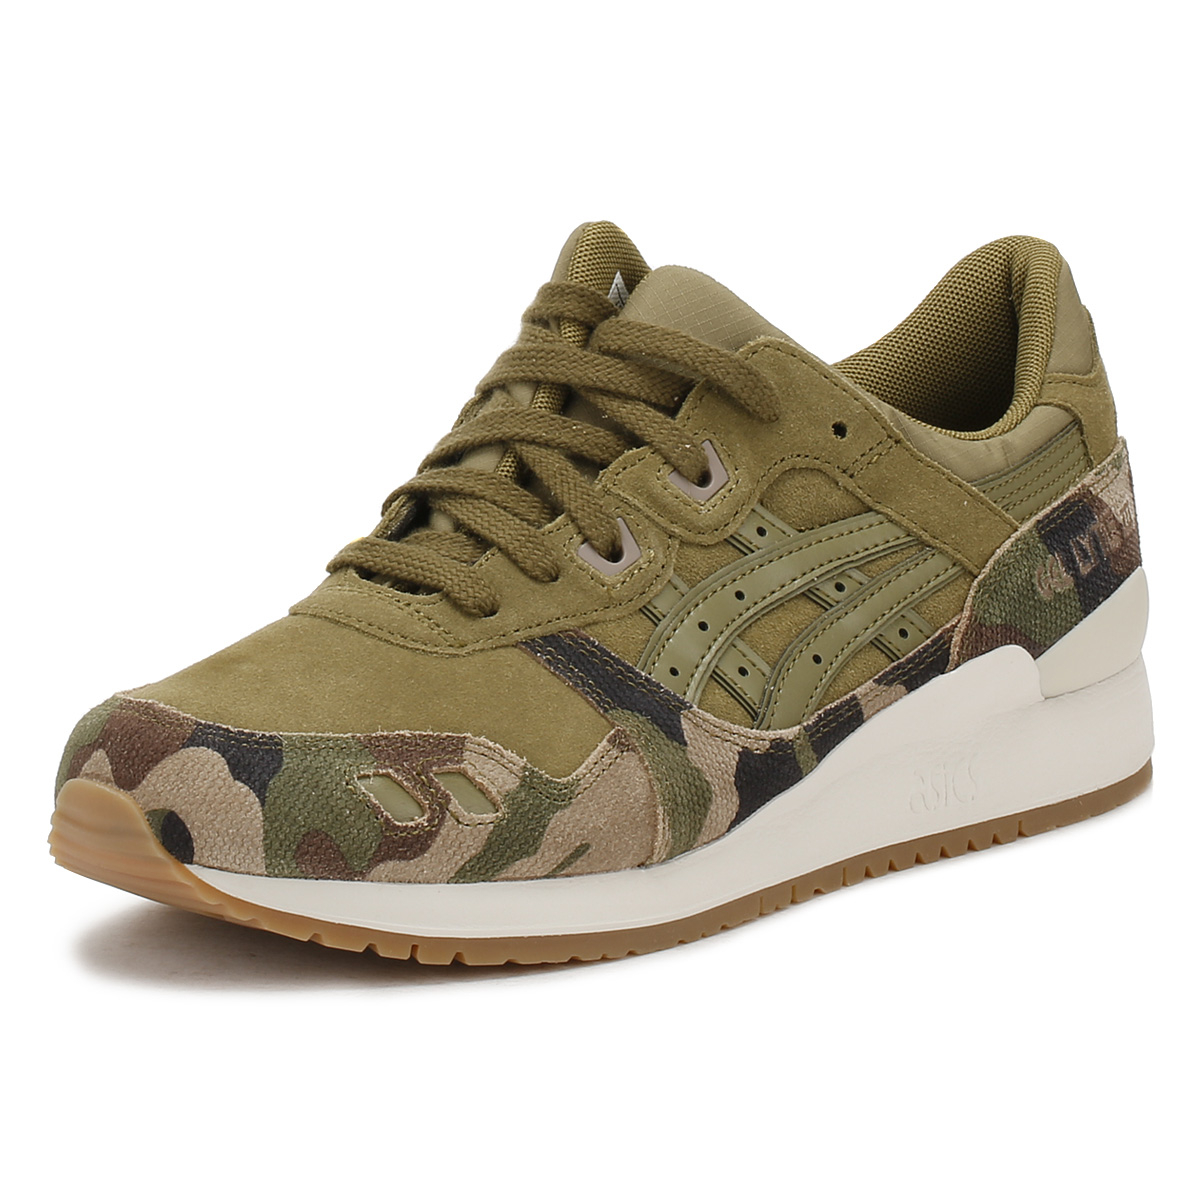 2e6bb8035e87b Details about ASICS Mens Martini Olive Green Camo Gel-Lyte III Trainers  Lace Up Suede Shoes